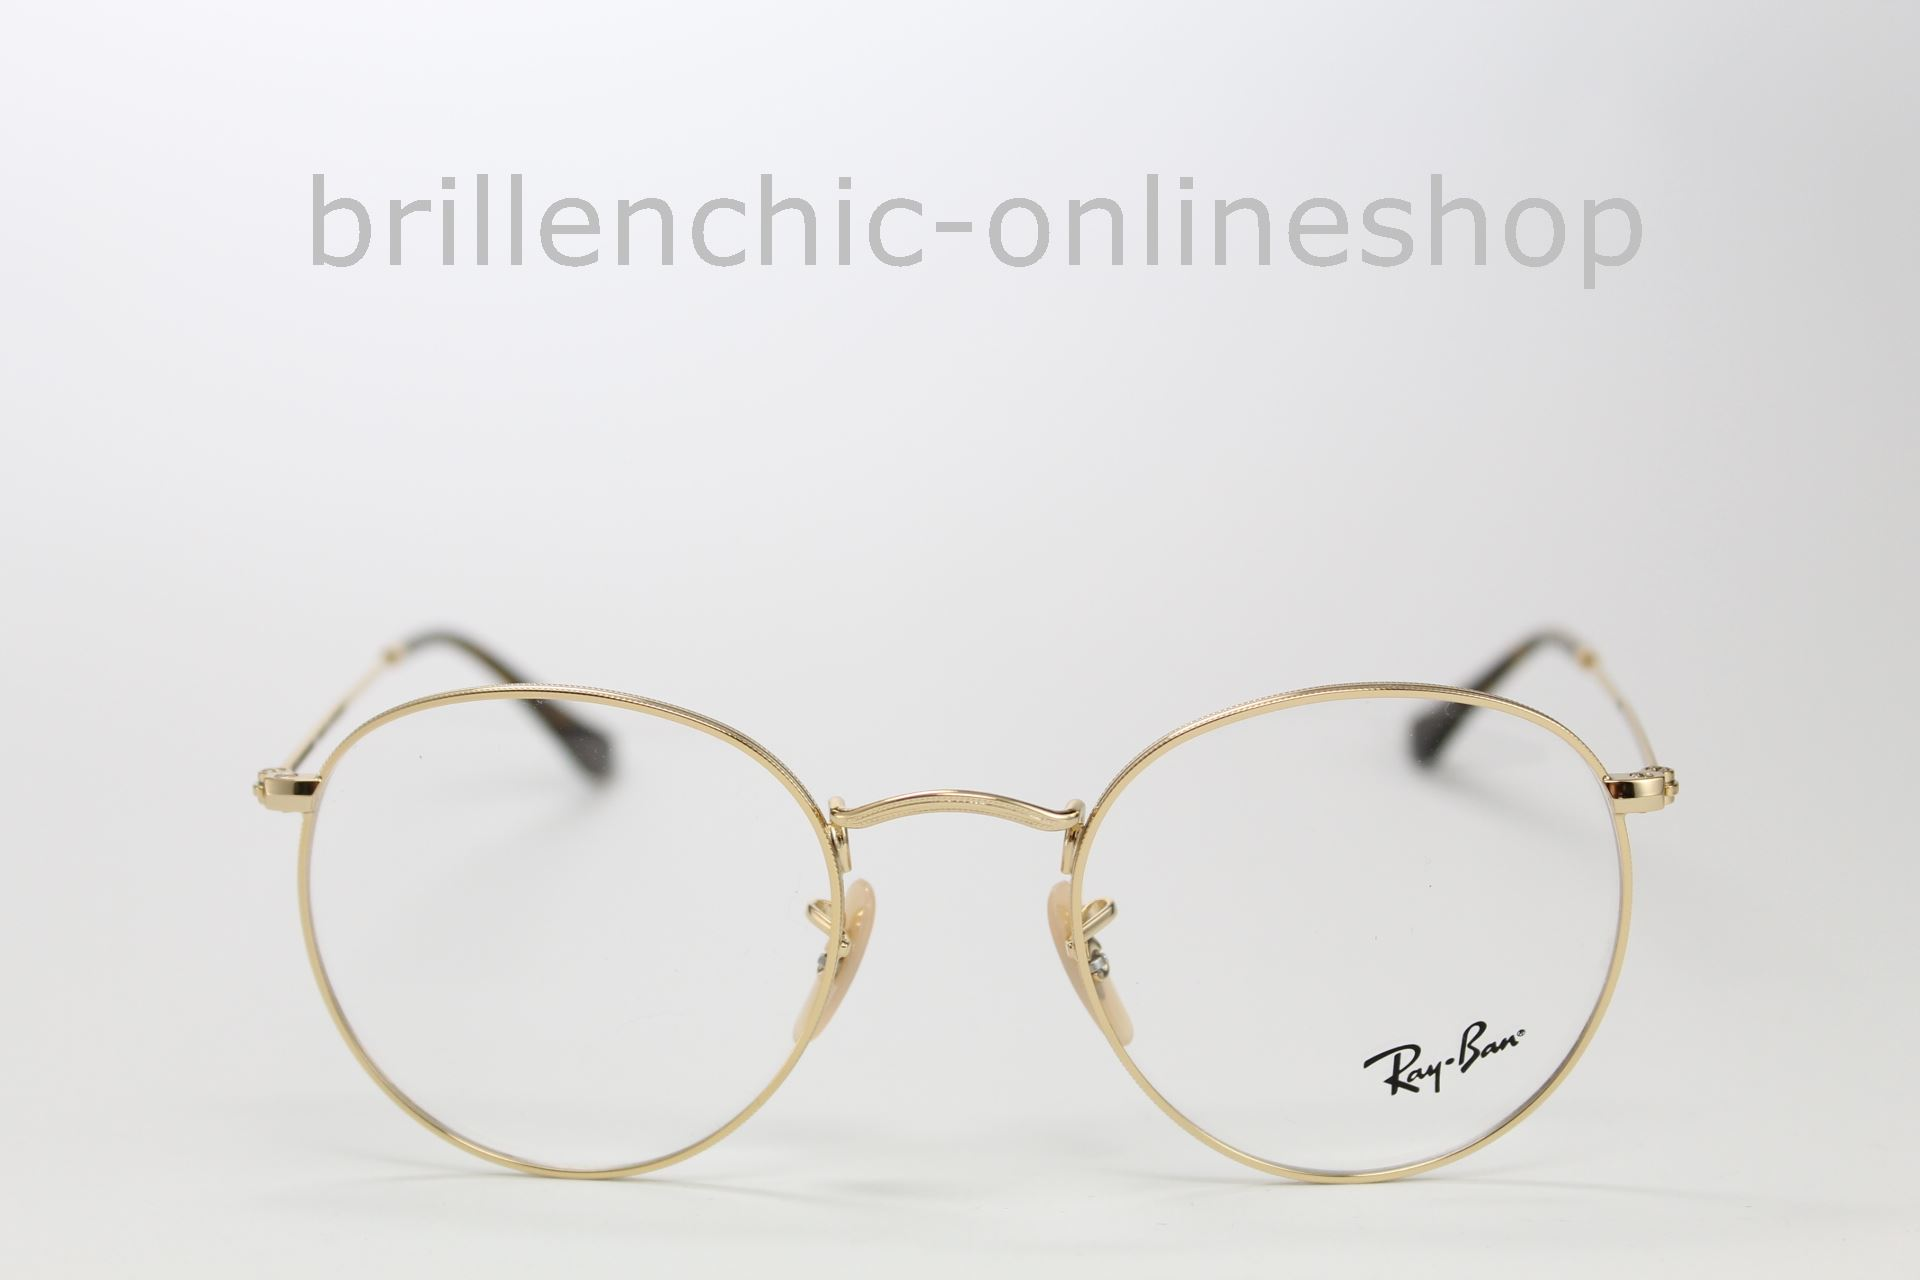 1809d10b32 Brillenchic-onlineshop in Berlin - Ray Ban RB 3447V 3447 2500 ROUND ...